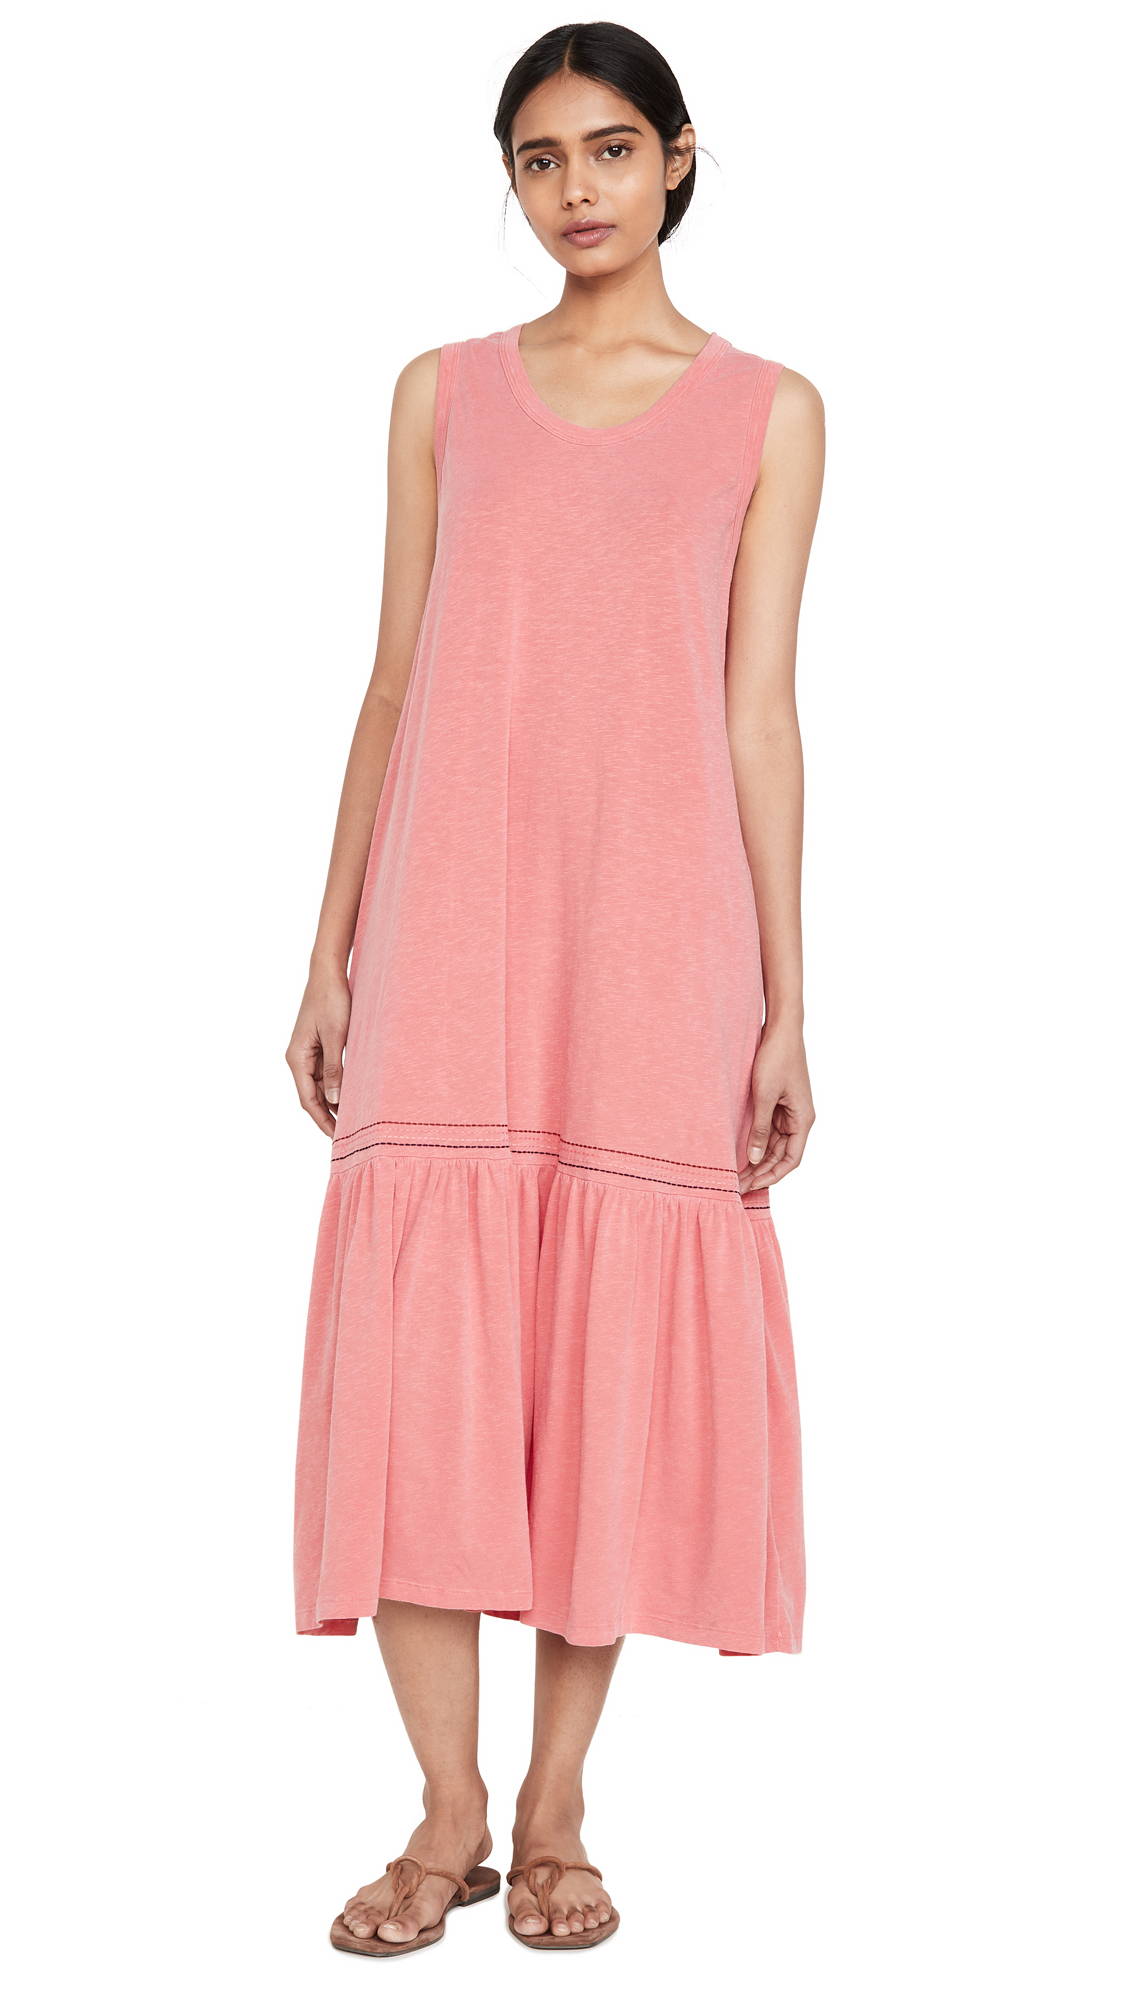 SUNDRY Embroidered Dress - 30% Off Sale